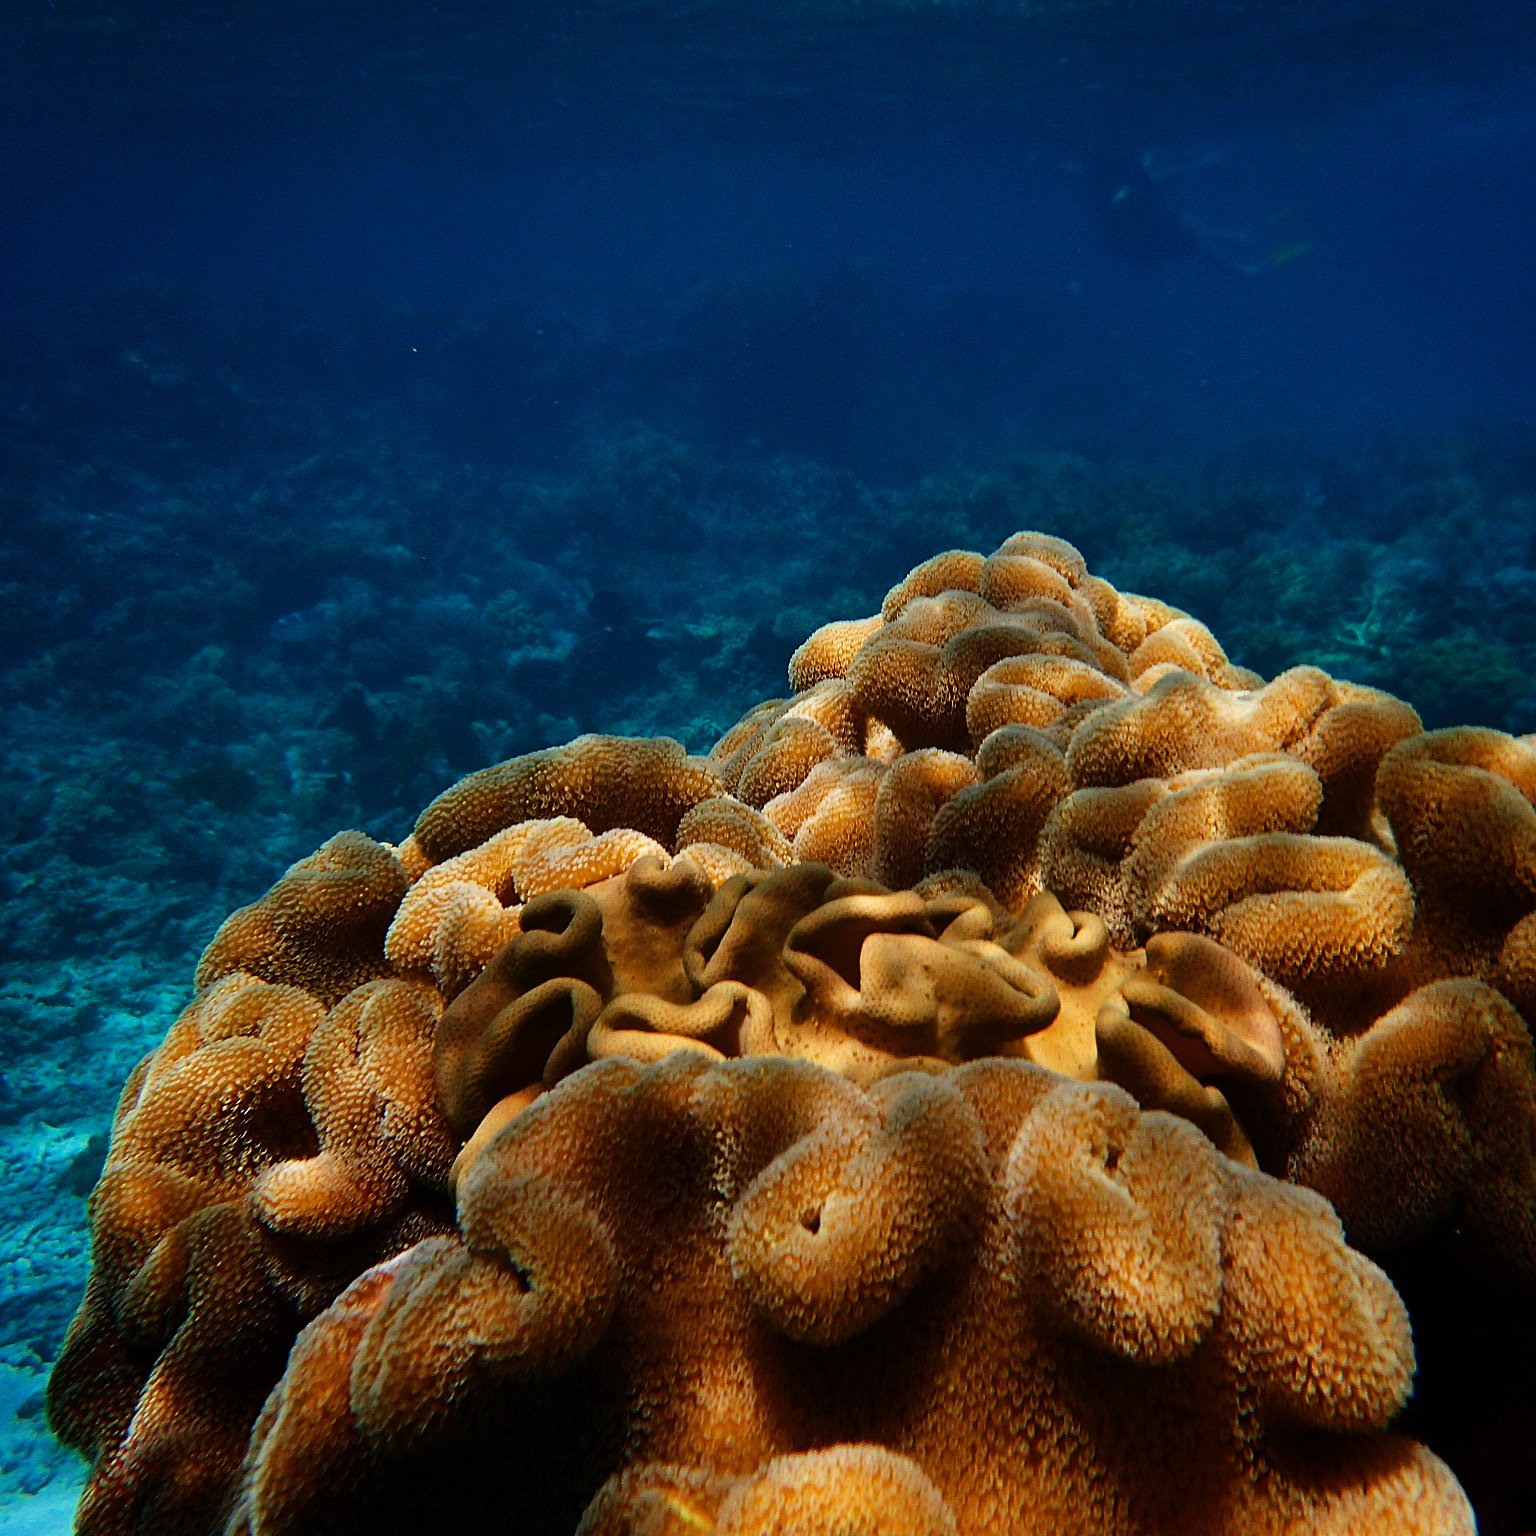 Why do Corals Prefer to Eat Plastic